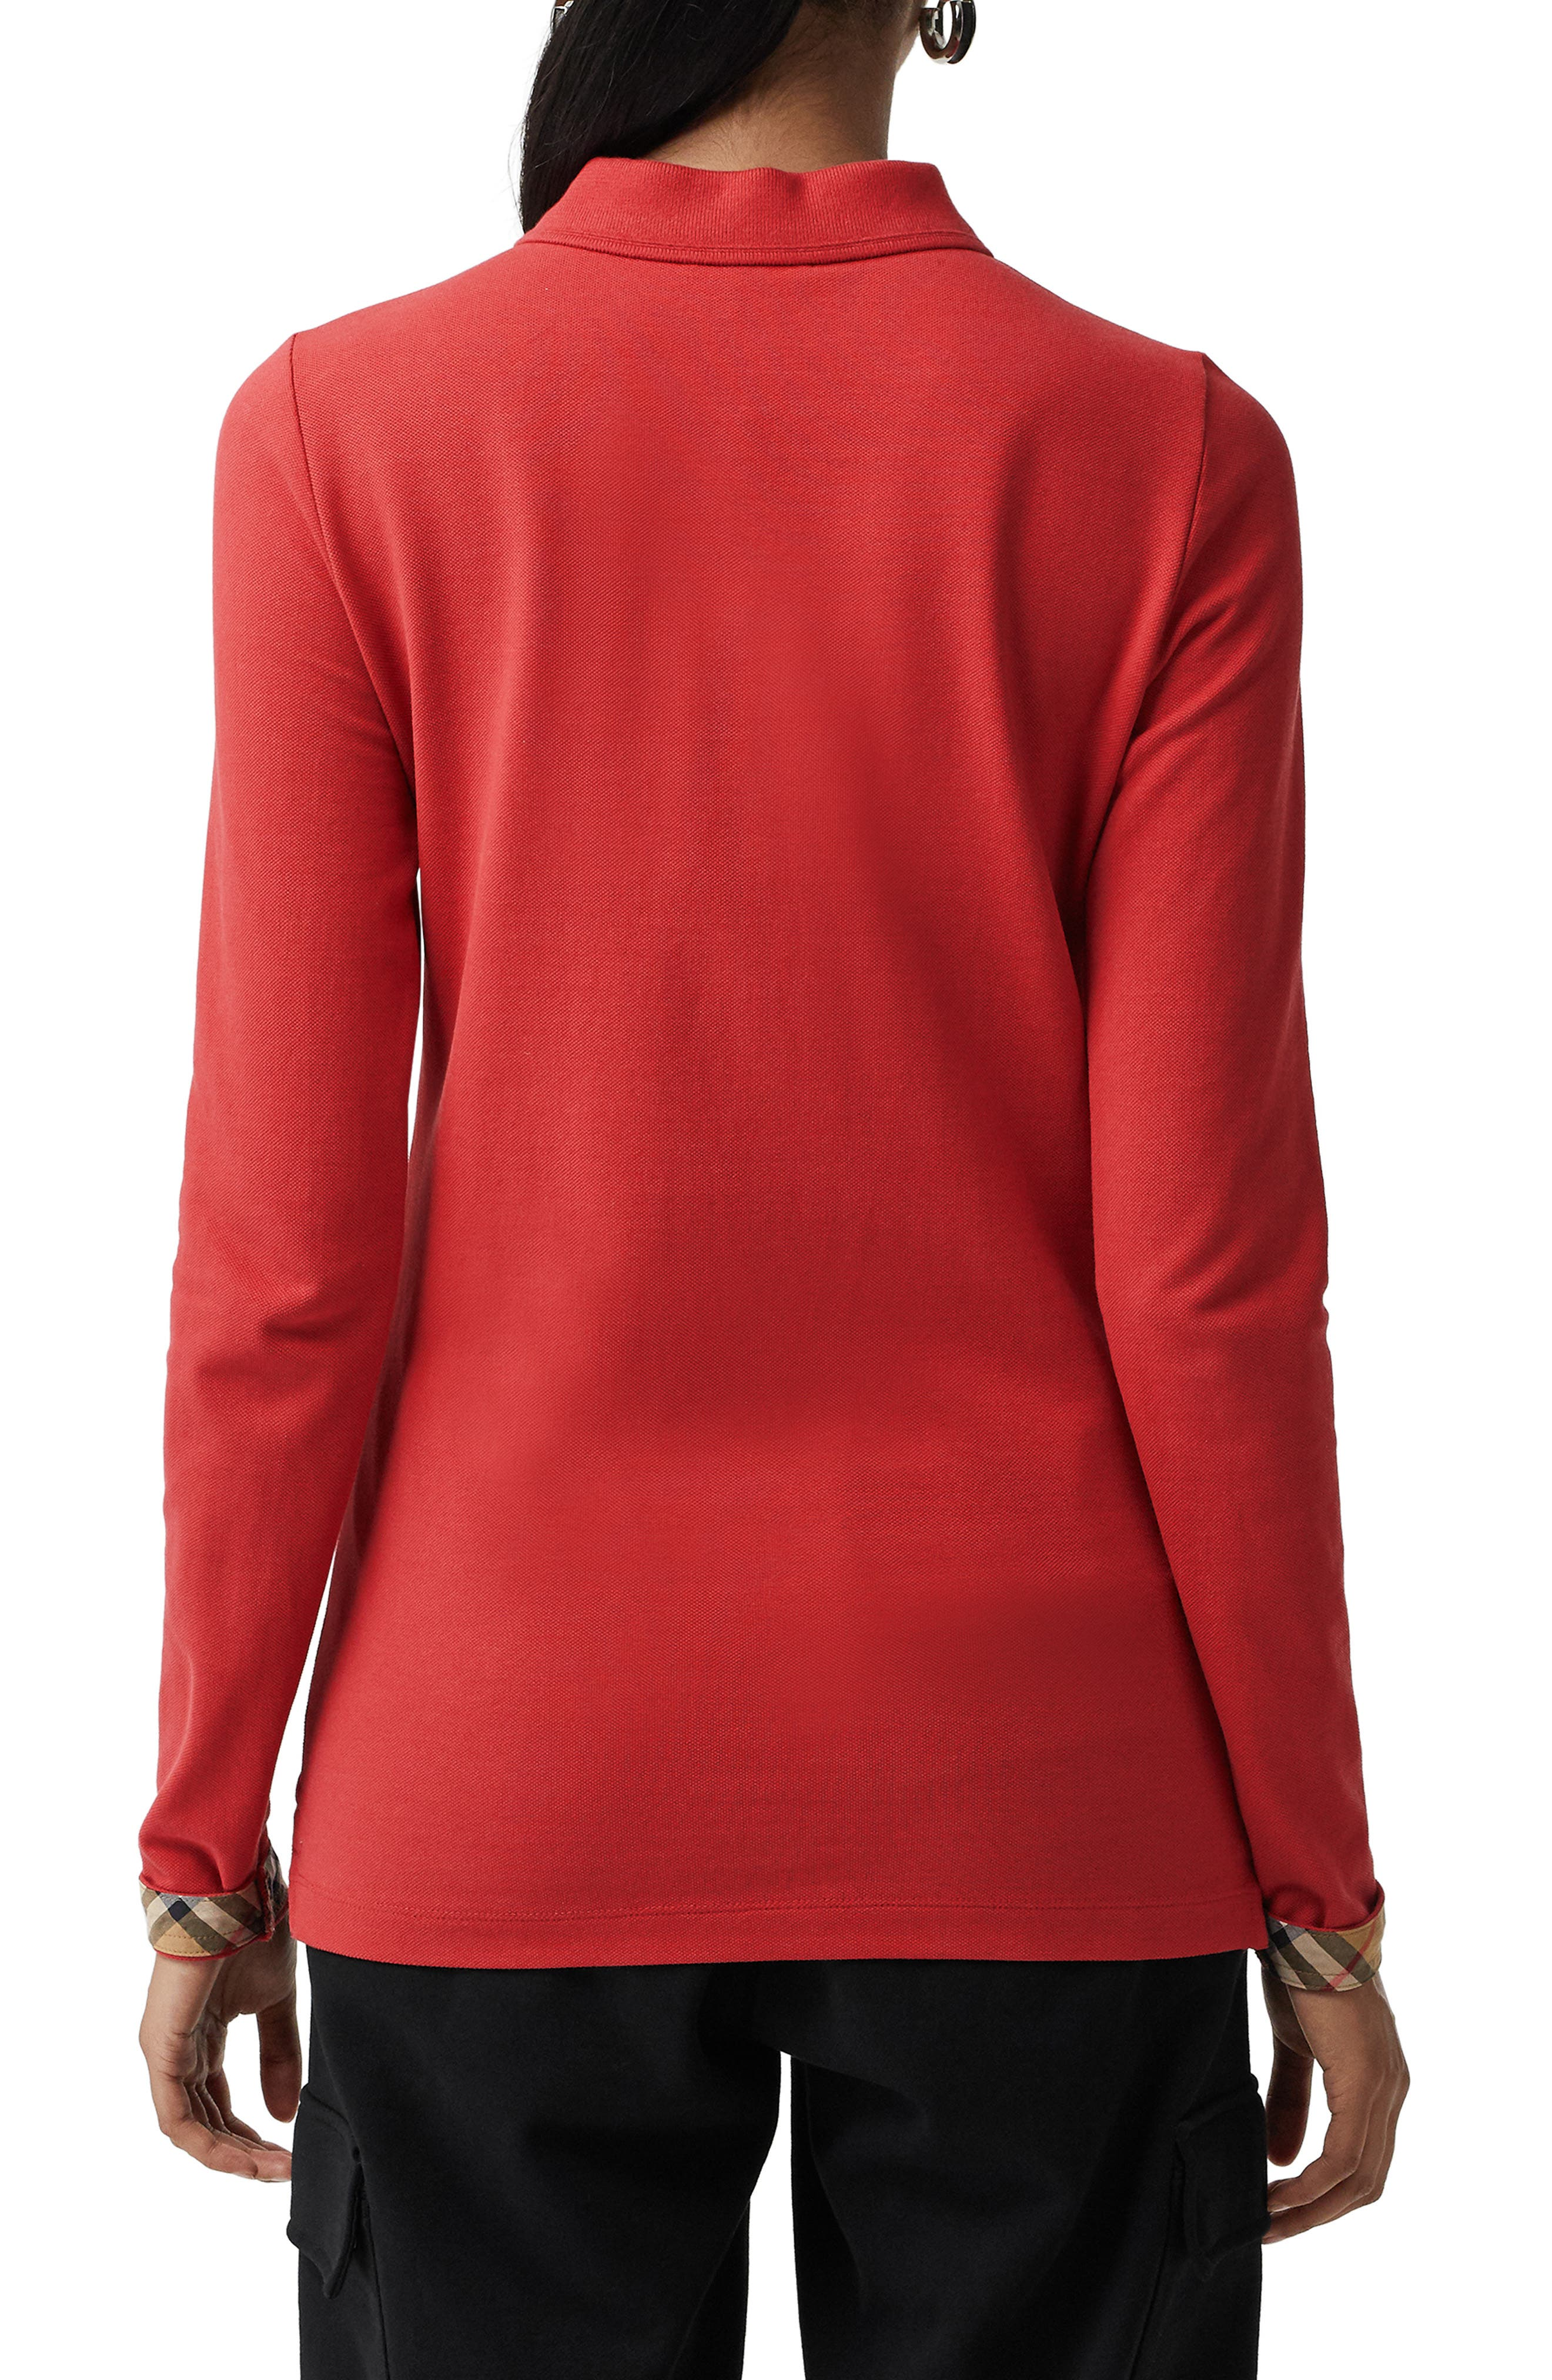 Zulia Polo Shirt,                             Alternate thumbnail 2, color,                             BRIGHT RED